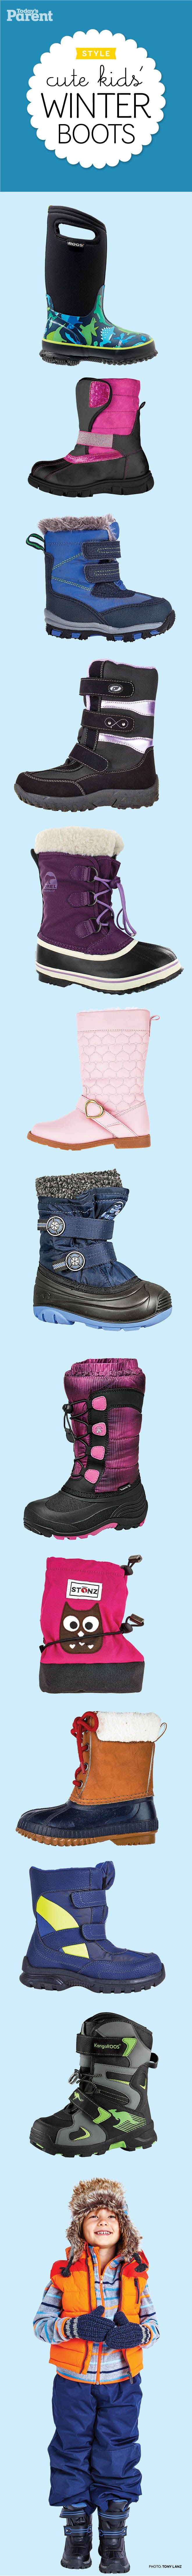 12 cozy winter boots for kids #TodaysParent #KidsWinterBoots